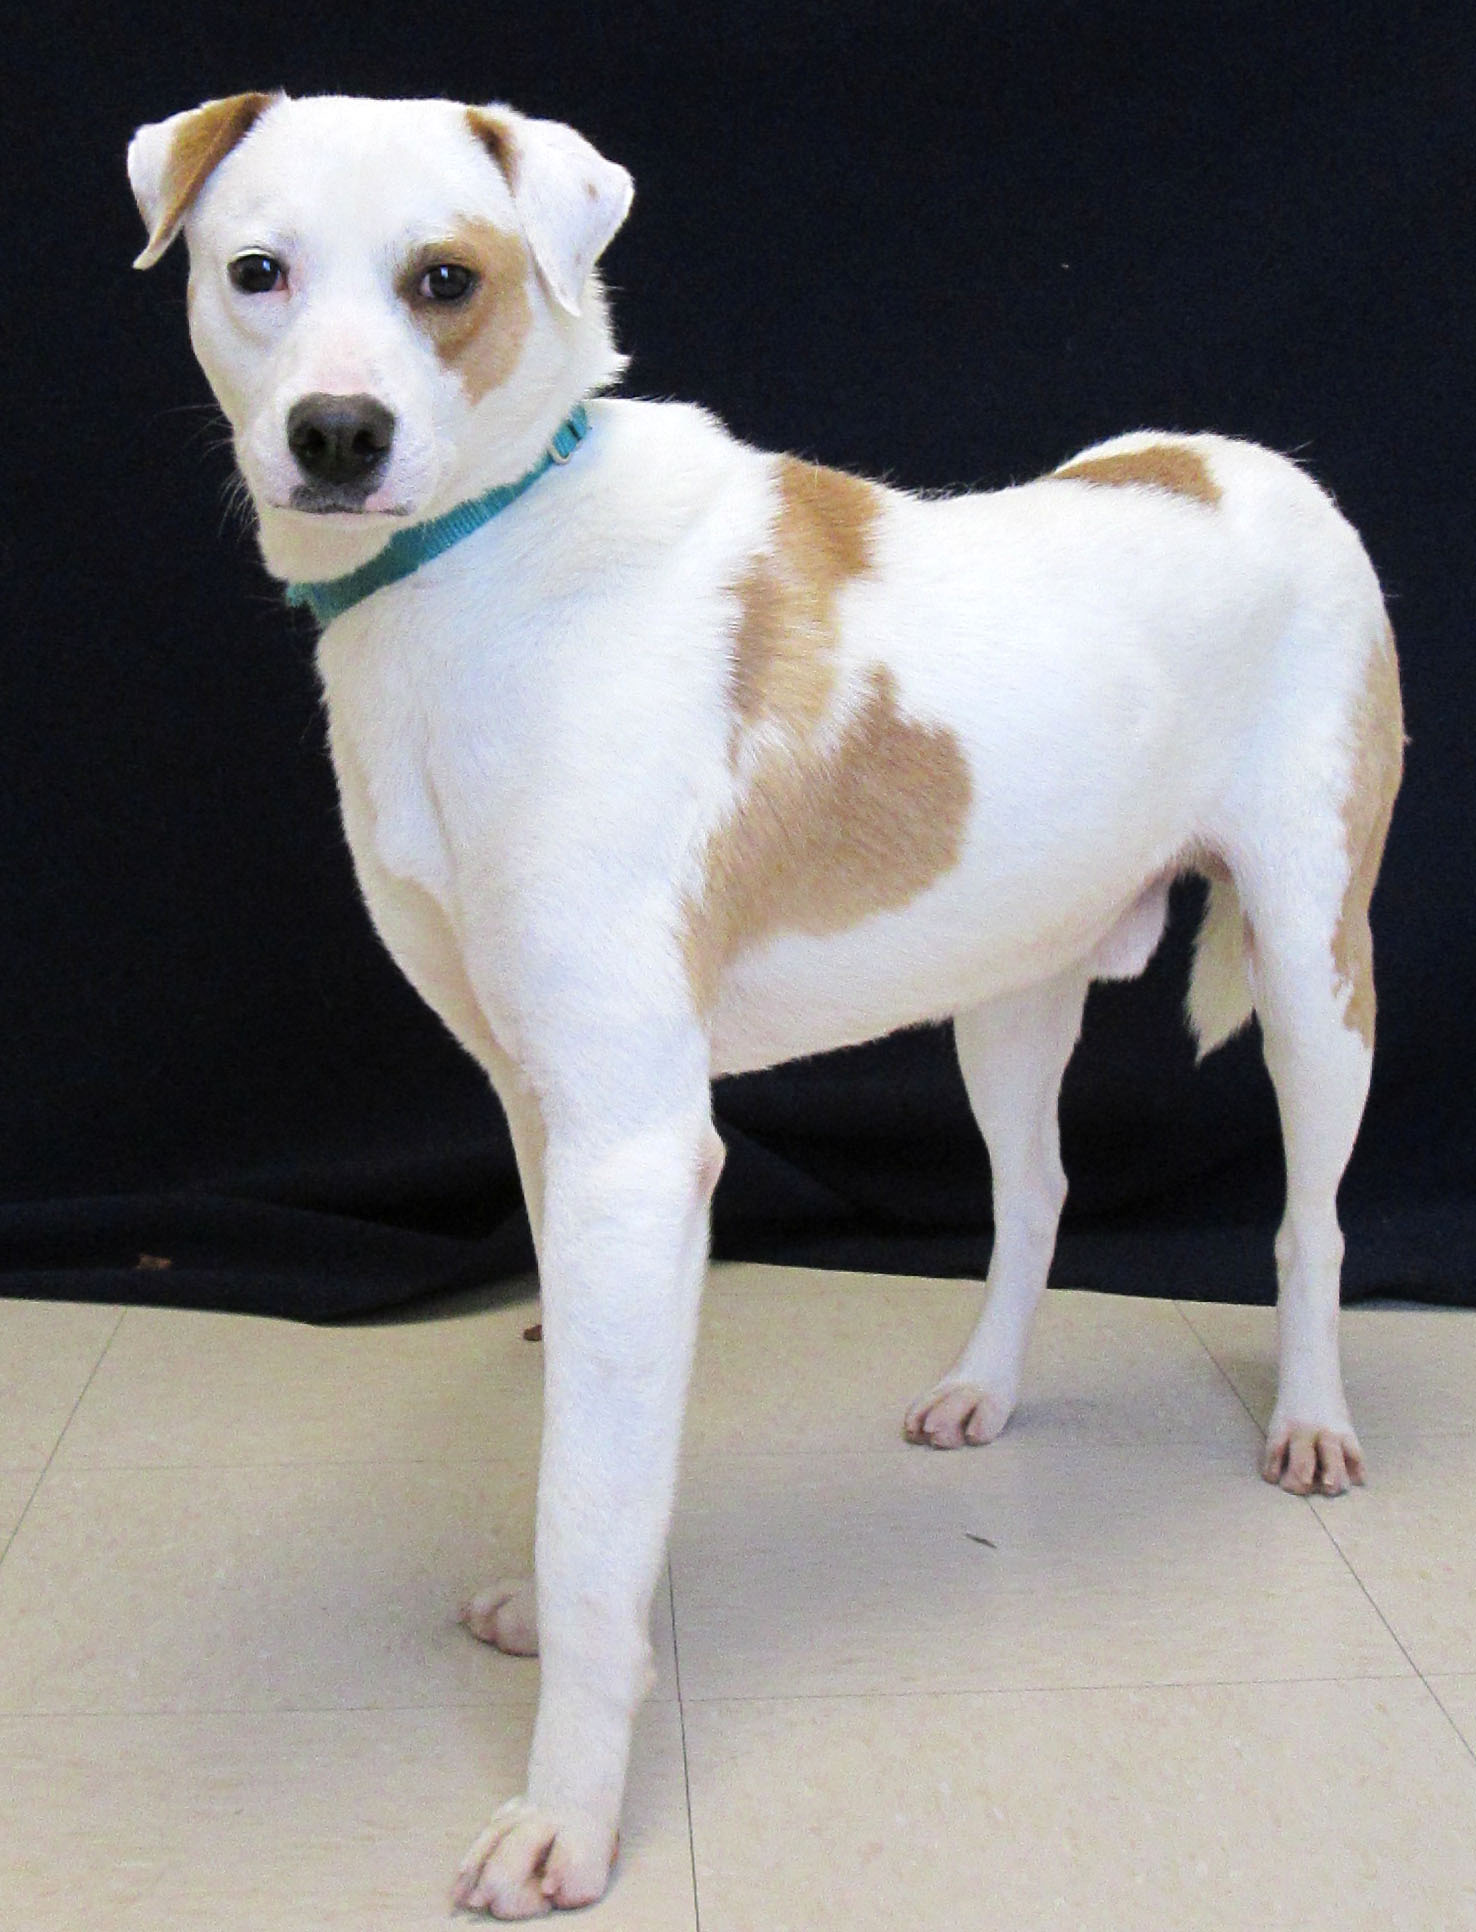 Gumby is a 2-year-old lab mix. He loves to play and run around with his toys. Healso lovesto be petted andgoon long walks. If there is a cat in the home he would do best with an assertive cat. He is selective with the dogs he meets,but in the right circumstance wouldbe okay withacaninefriend.